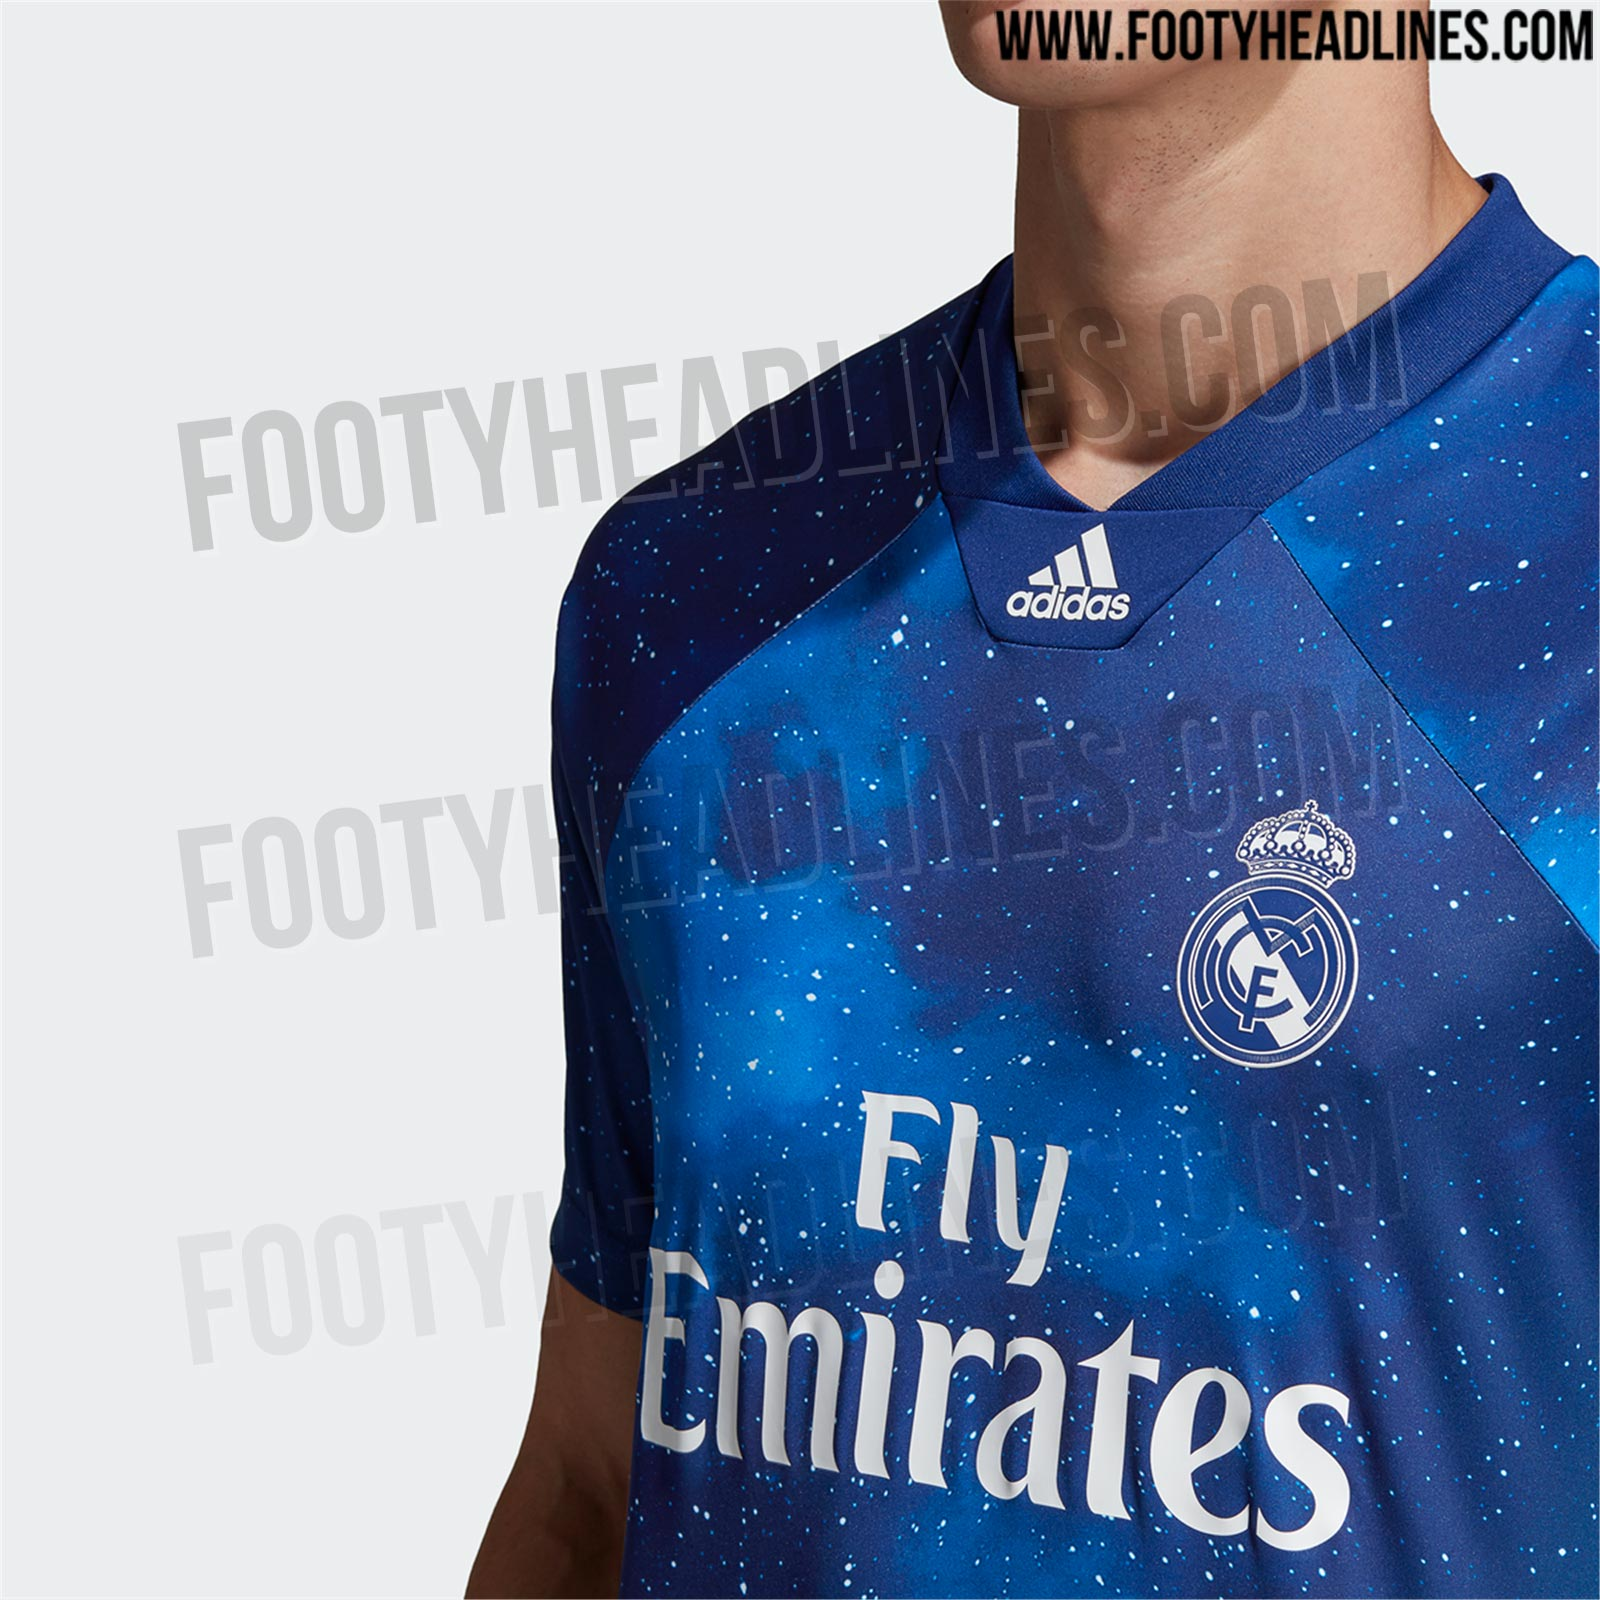 c0451bdeb Exclusive  Outstanding Adidas x EA Sports Real Madrid Kit Leaked ...